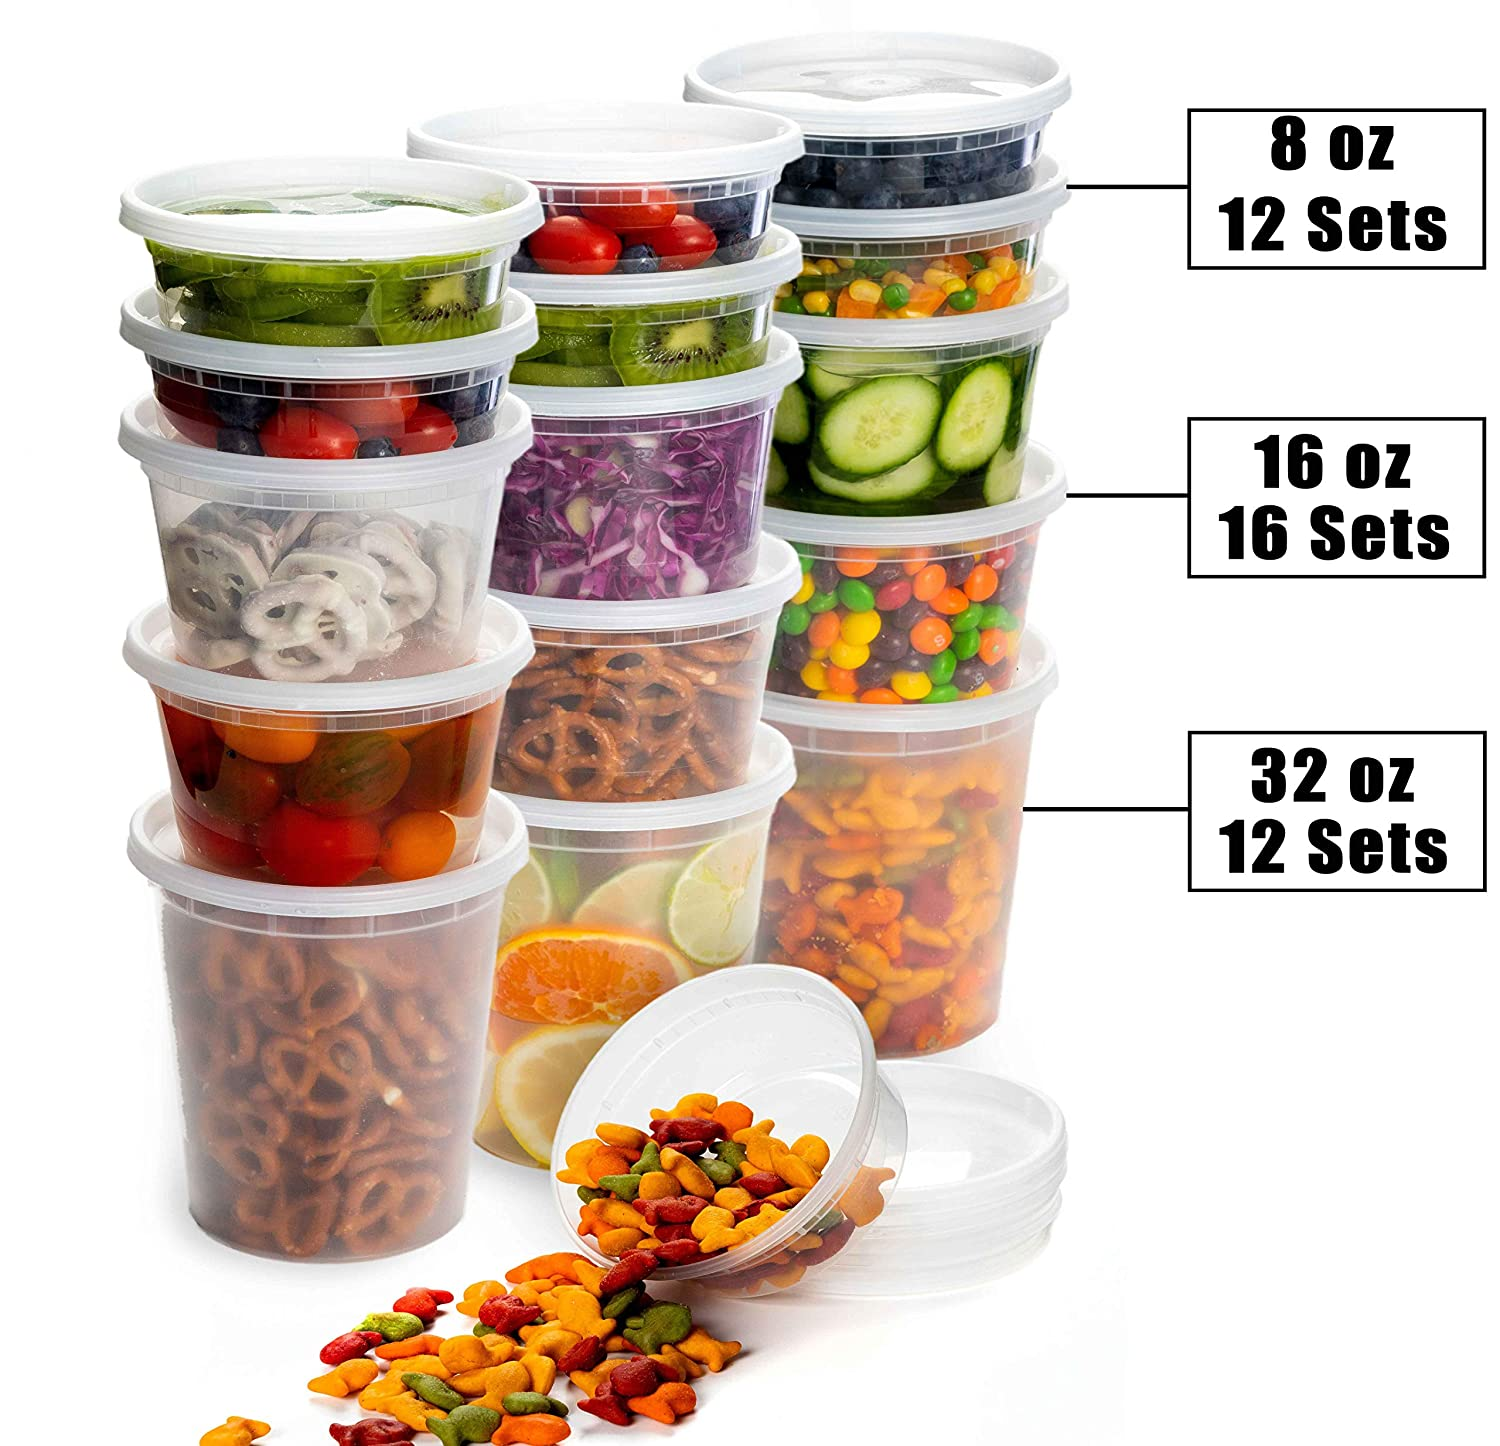 Safeware 8, 16, 32 Oz [40 Sets] Deli Plastic Food Containers with Airtight Lids, Leakproof Slime Small Combo Pack [Reusable, Storage, Disposable, Meal Prep, Soup, Microwaveable & Freezer Safe]